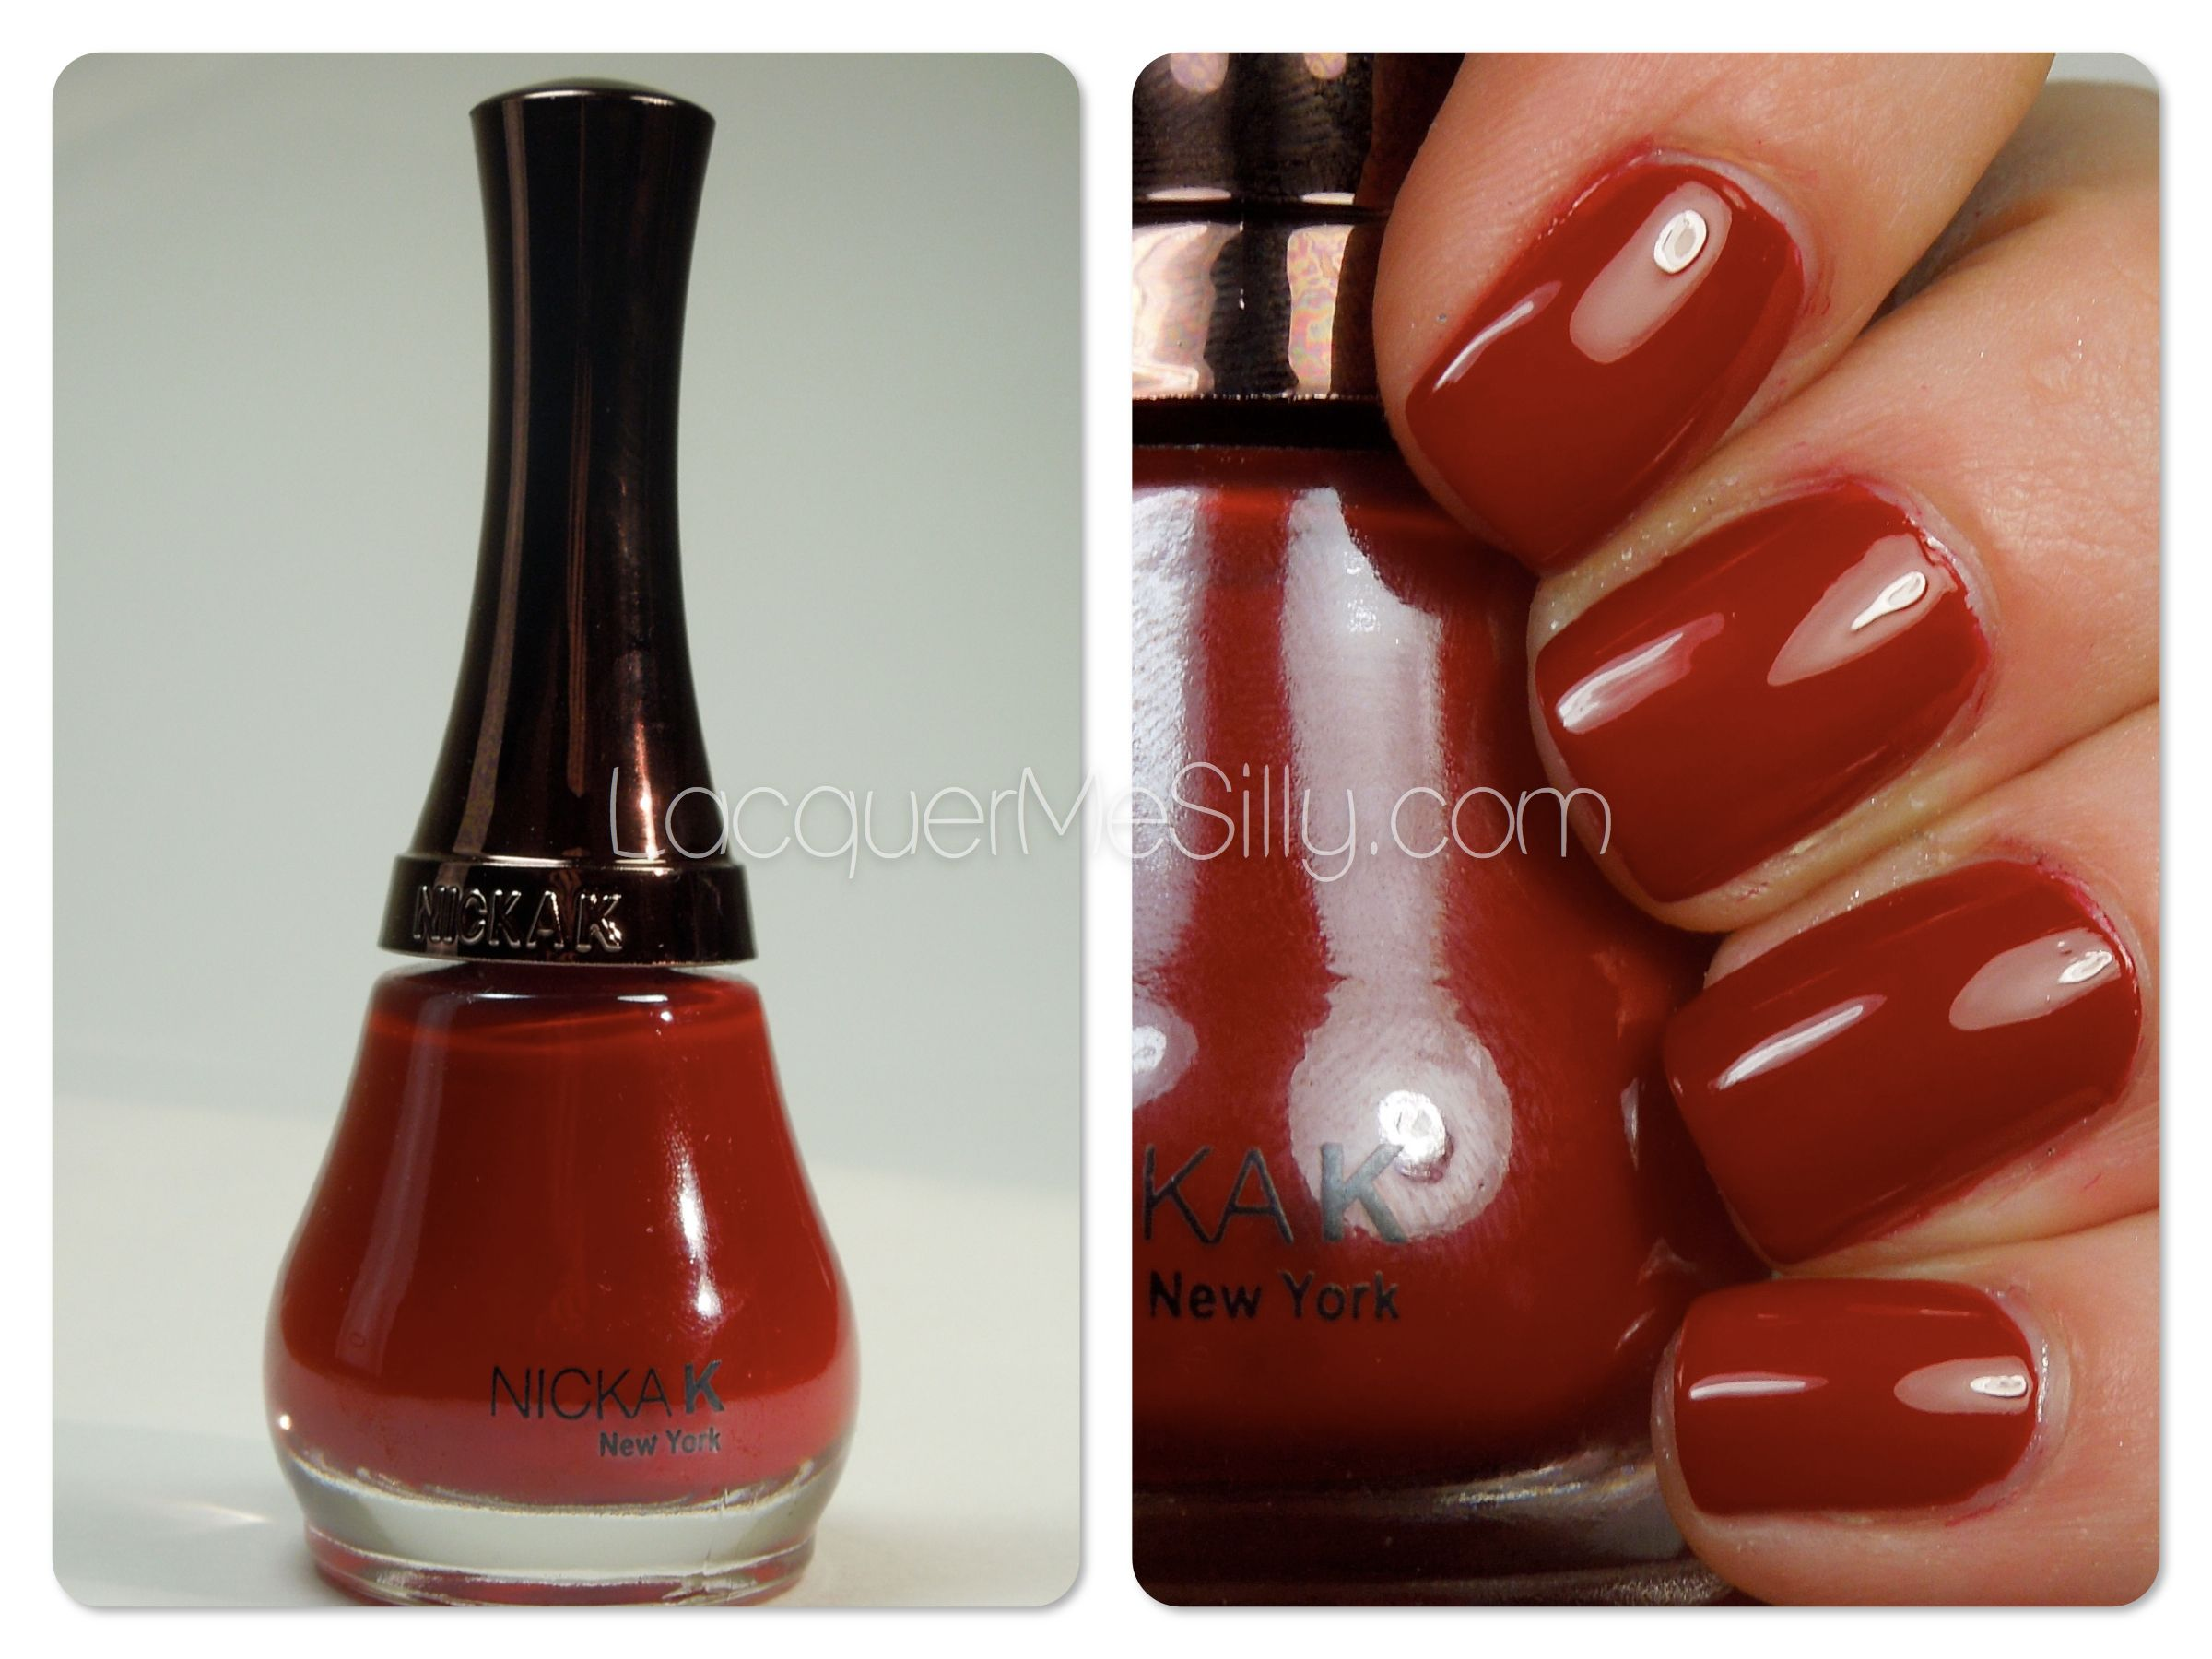 Nicka K New York nail polish in the color Ripe Apple, a deep red ...